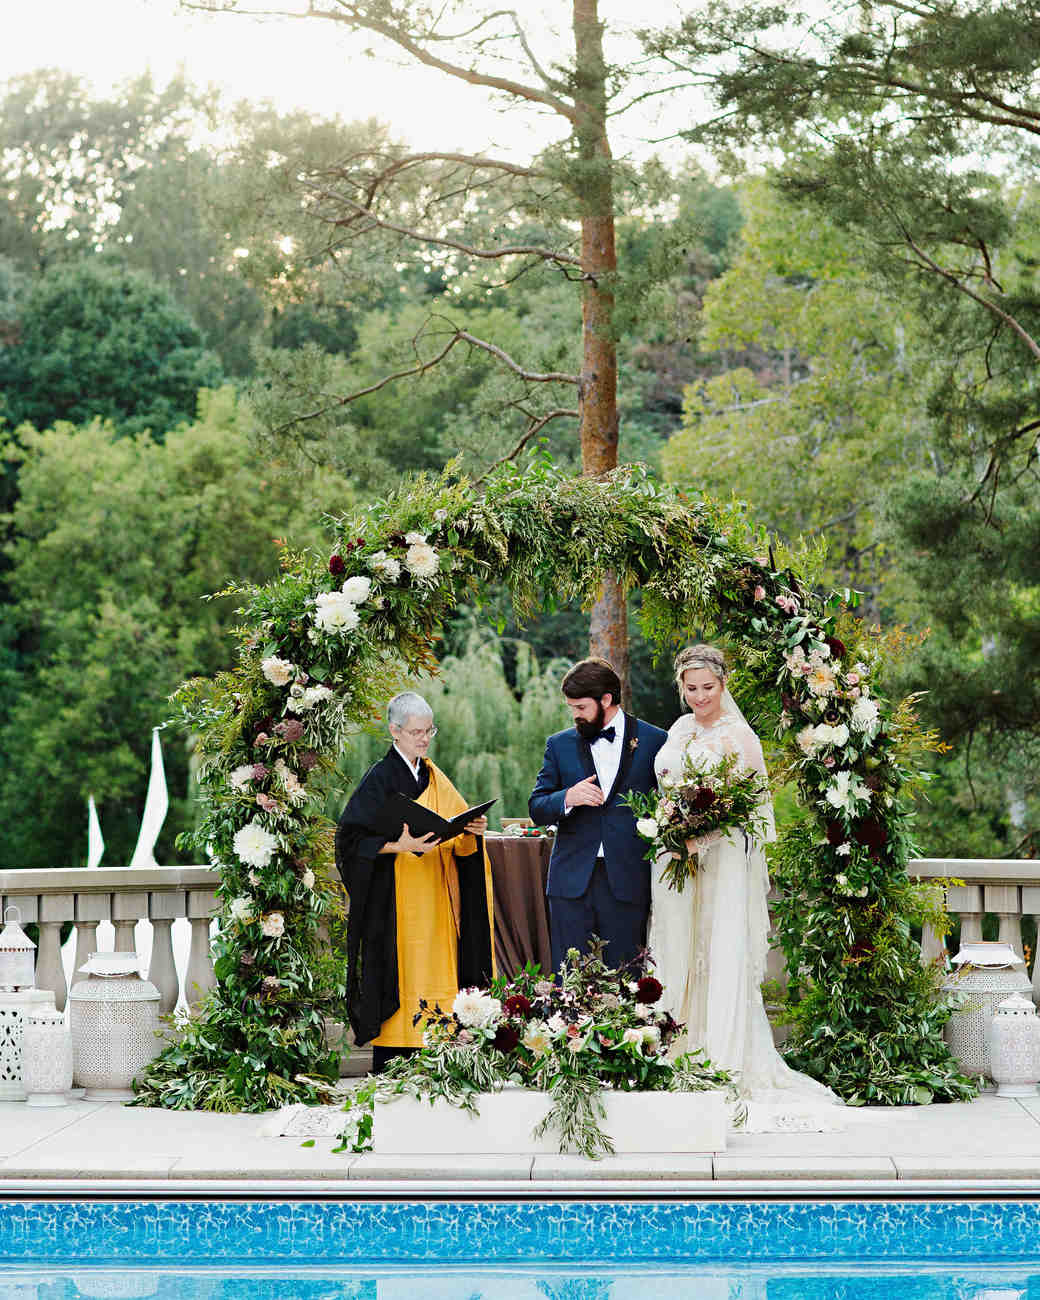 britt courtney wedding minnesota ceremony arch